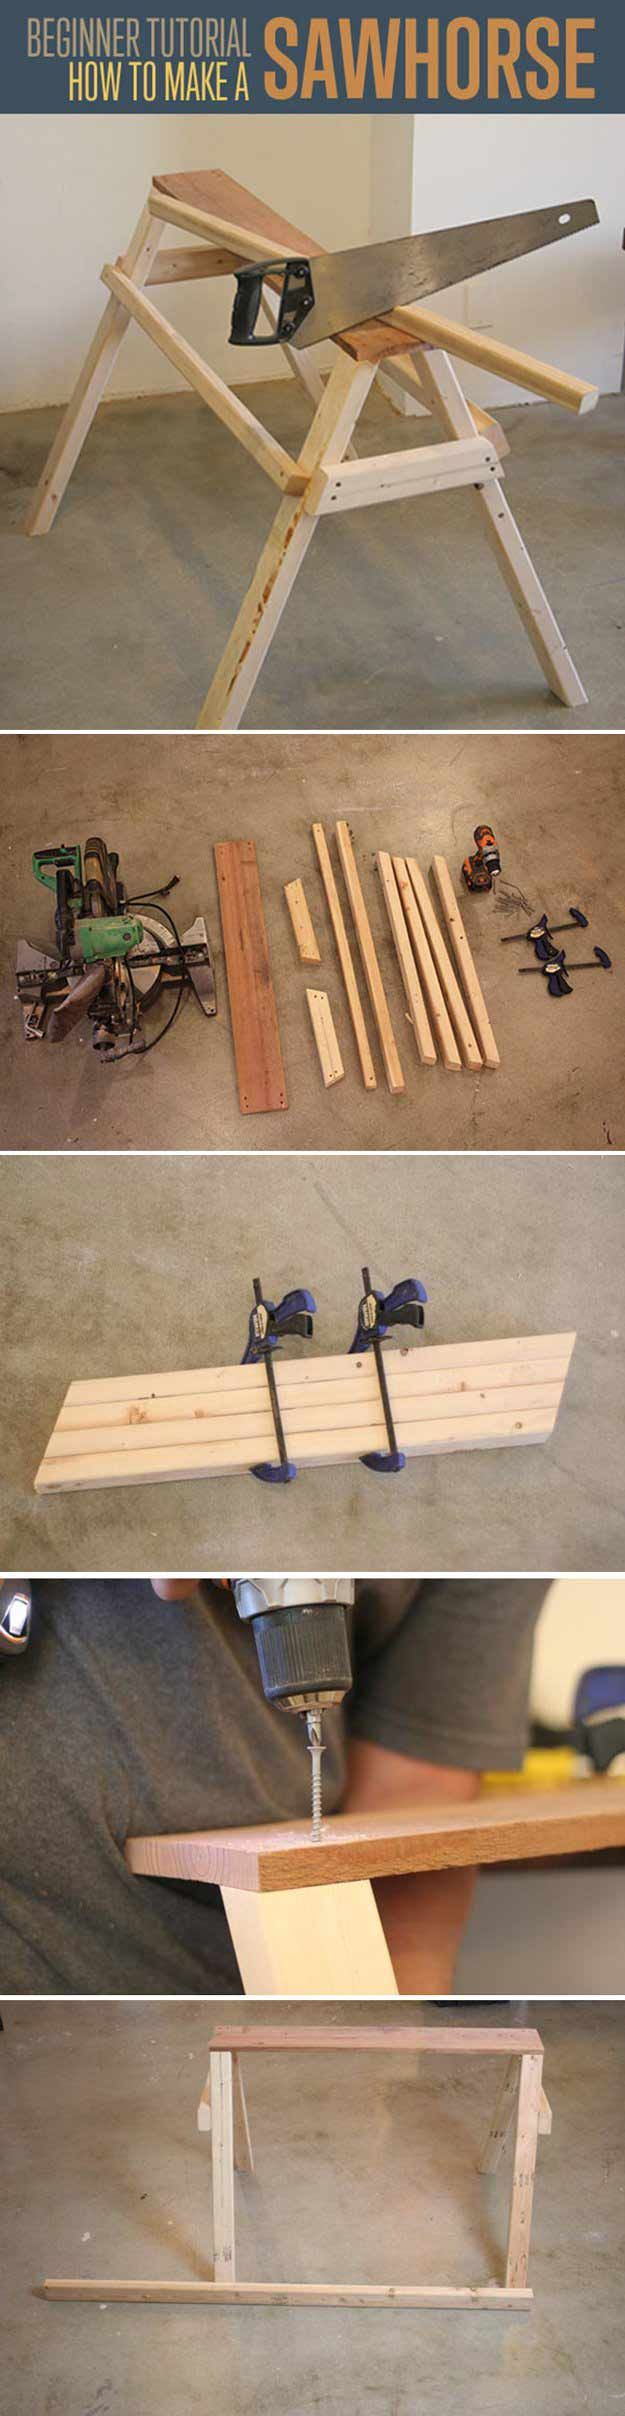 DIY Sawhorse | Easy Woodworking Projects